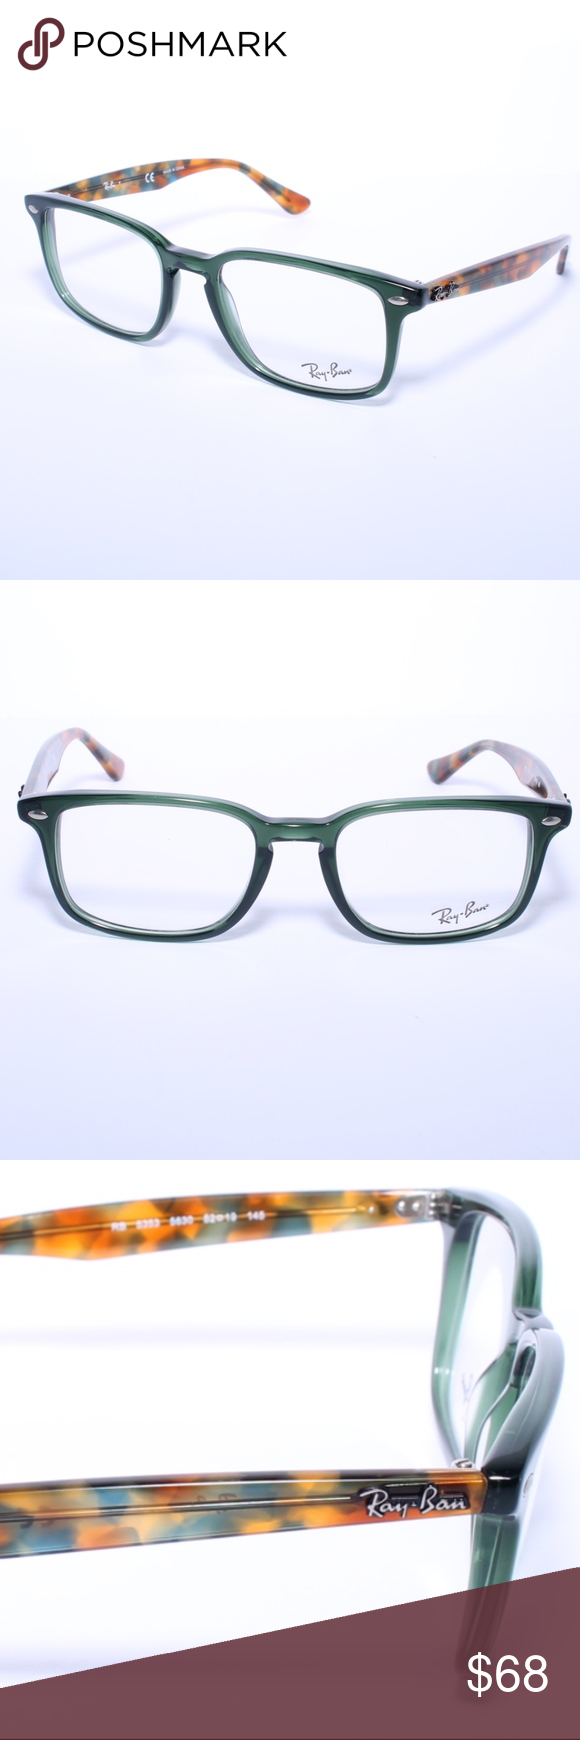 4a8a39e73f Ray Ban RB 5353 5630 Green-Havana Eyeglasses Ray Ban RB 5353 5630  Green-Havana Eyeglasses Frames 52 19 Brand new 100% authentic Comes with  Generic Case